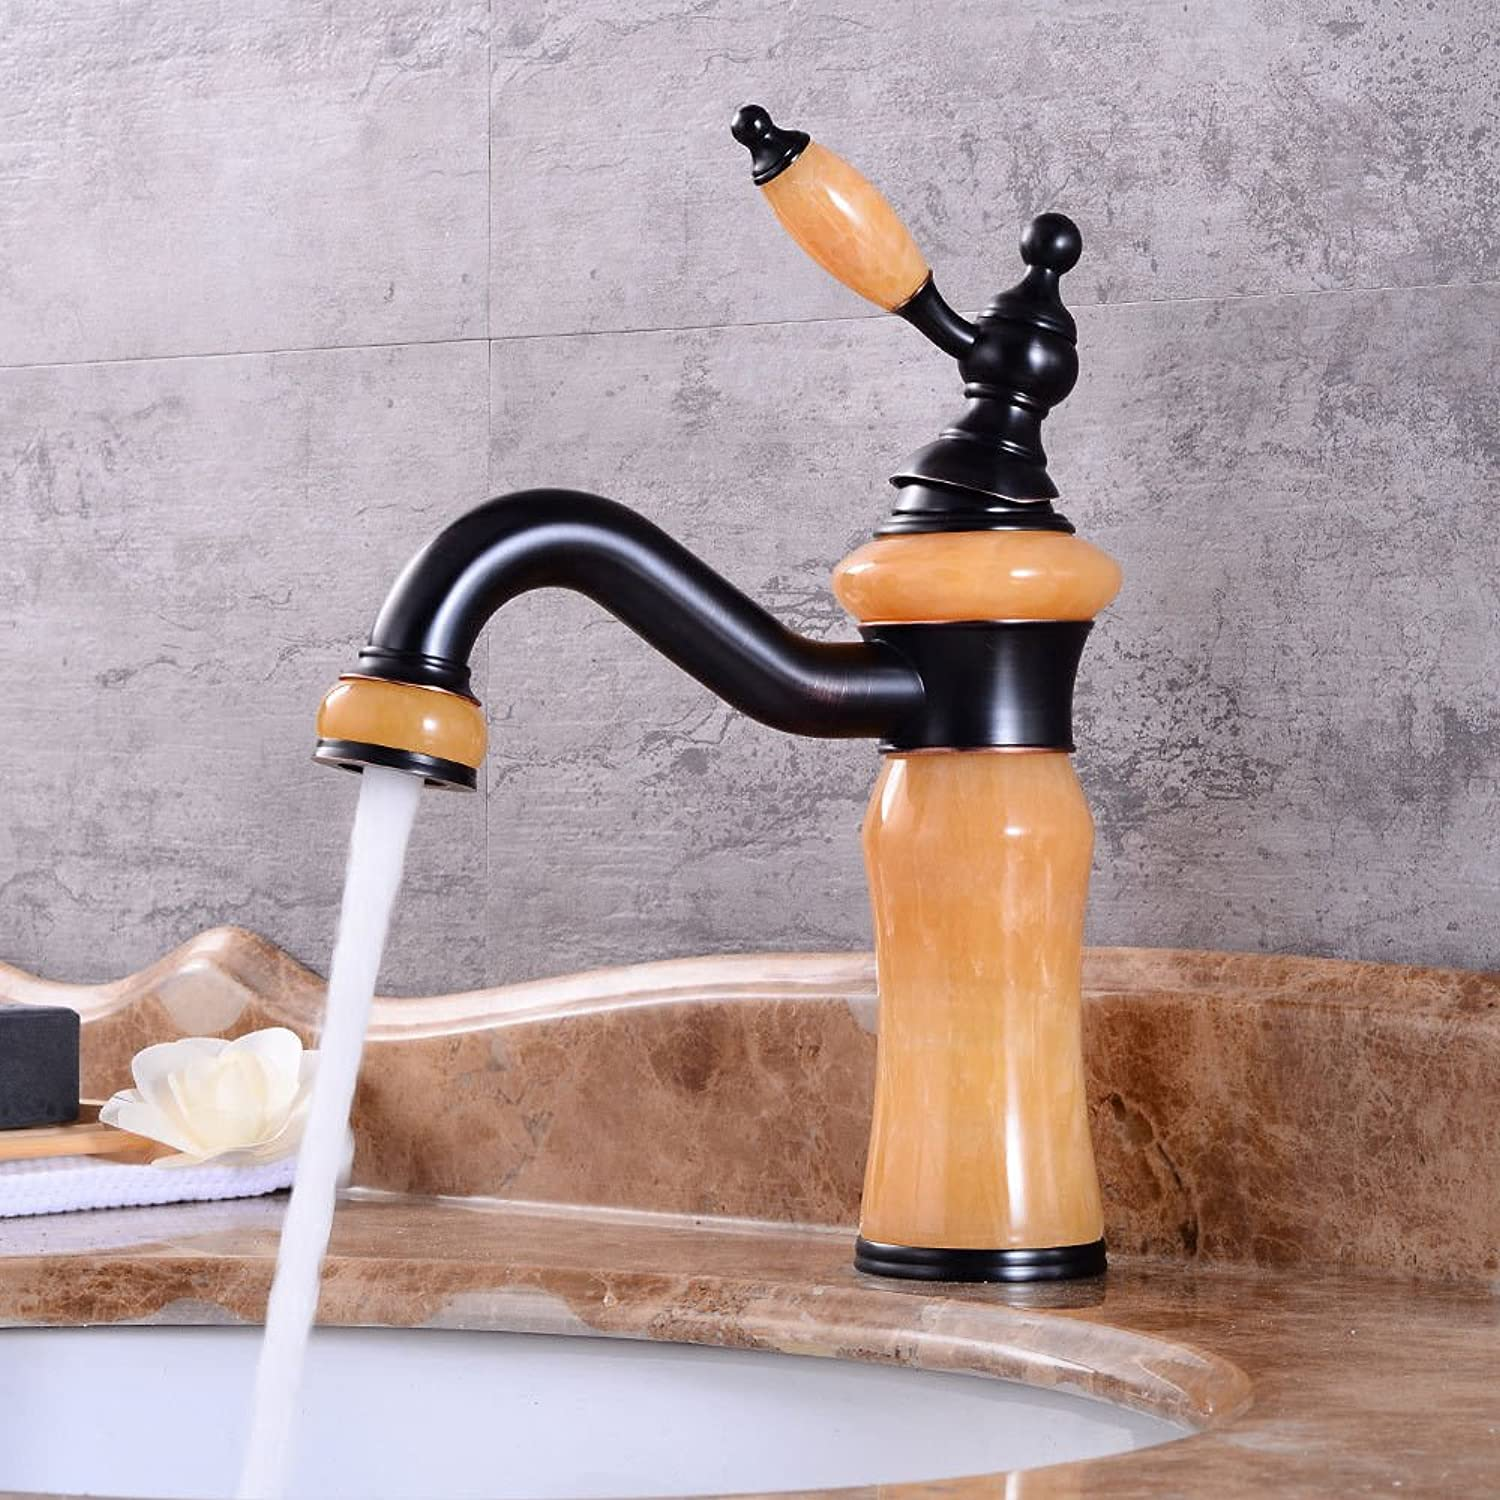 AQMMi Bathroom Sink Mixer Tap Black Antique Jade Hot and Cold Water Swivel Taps for Bathroom Sink